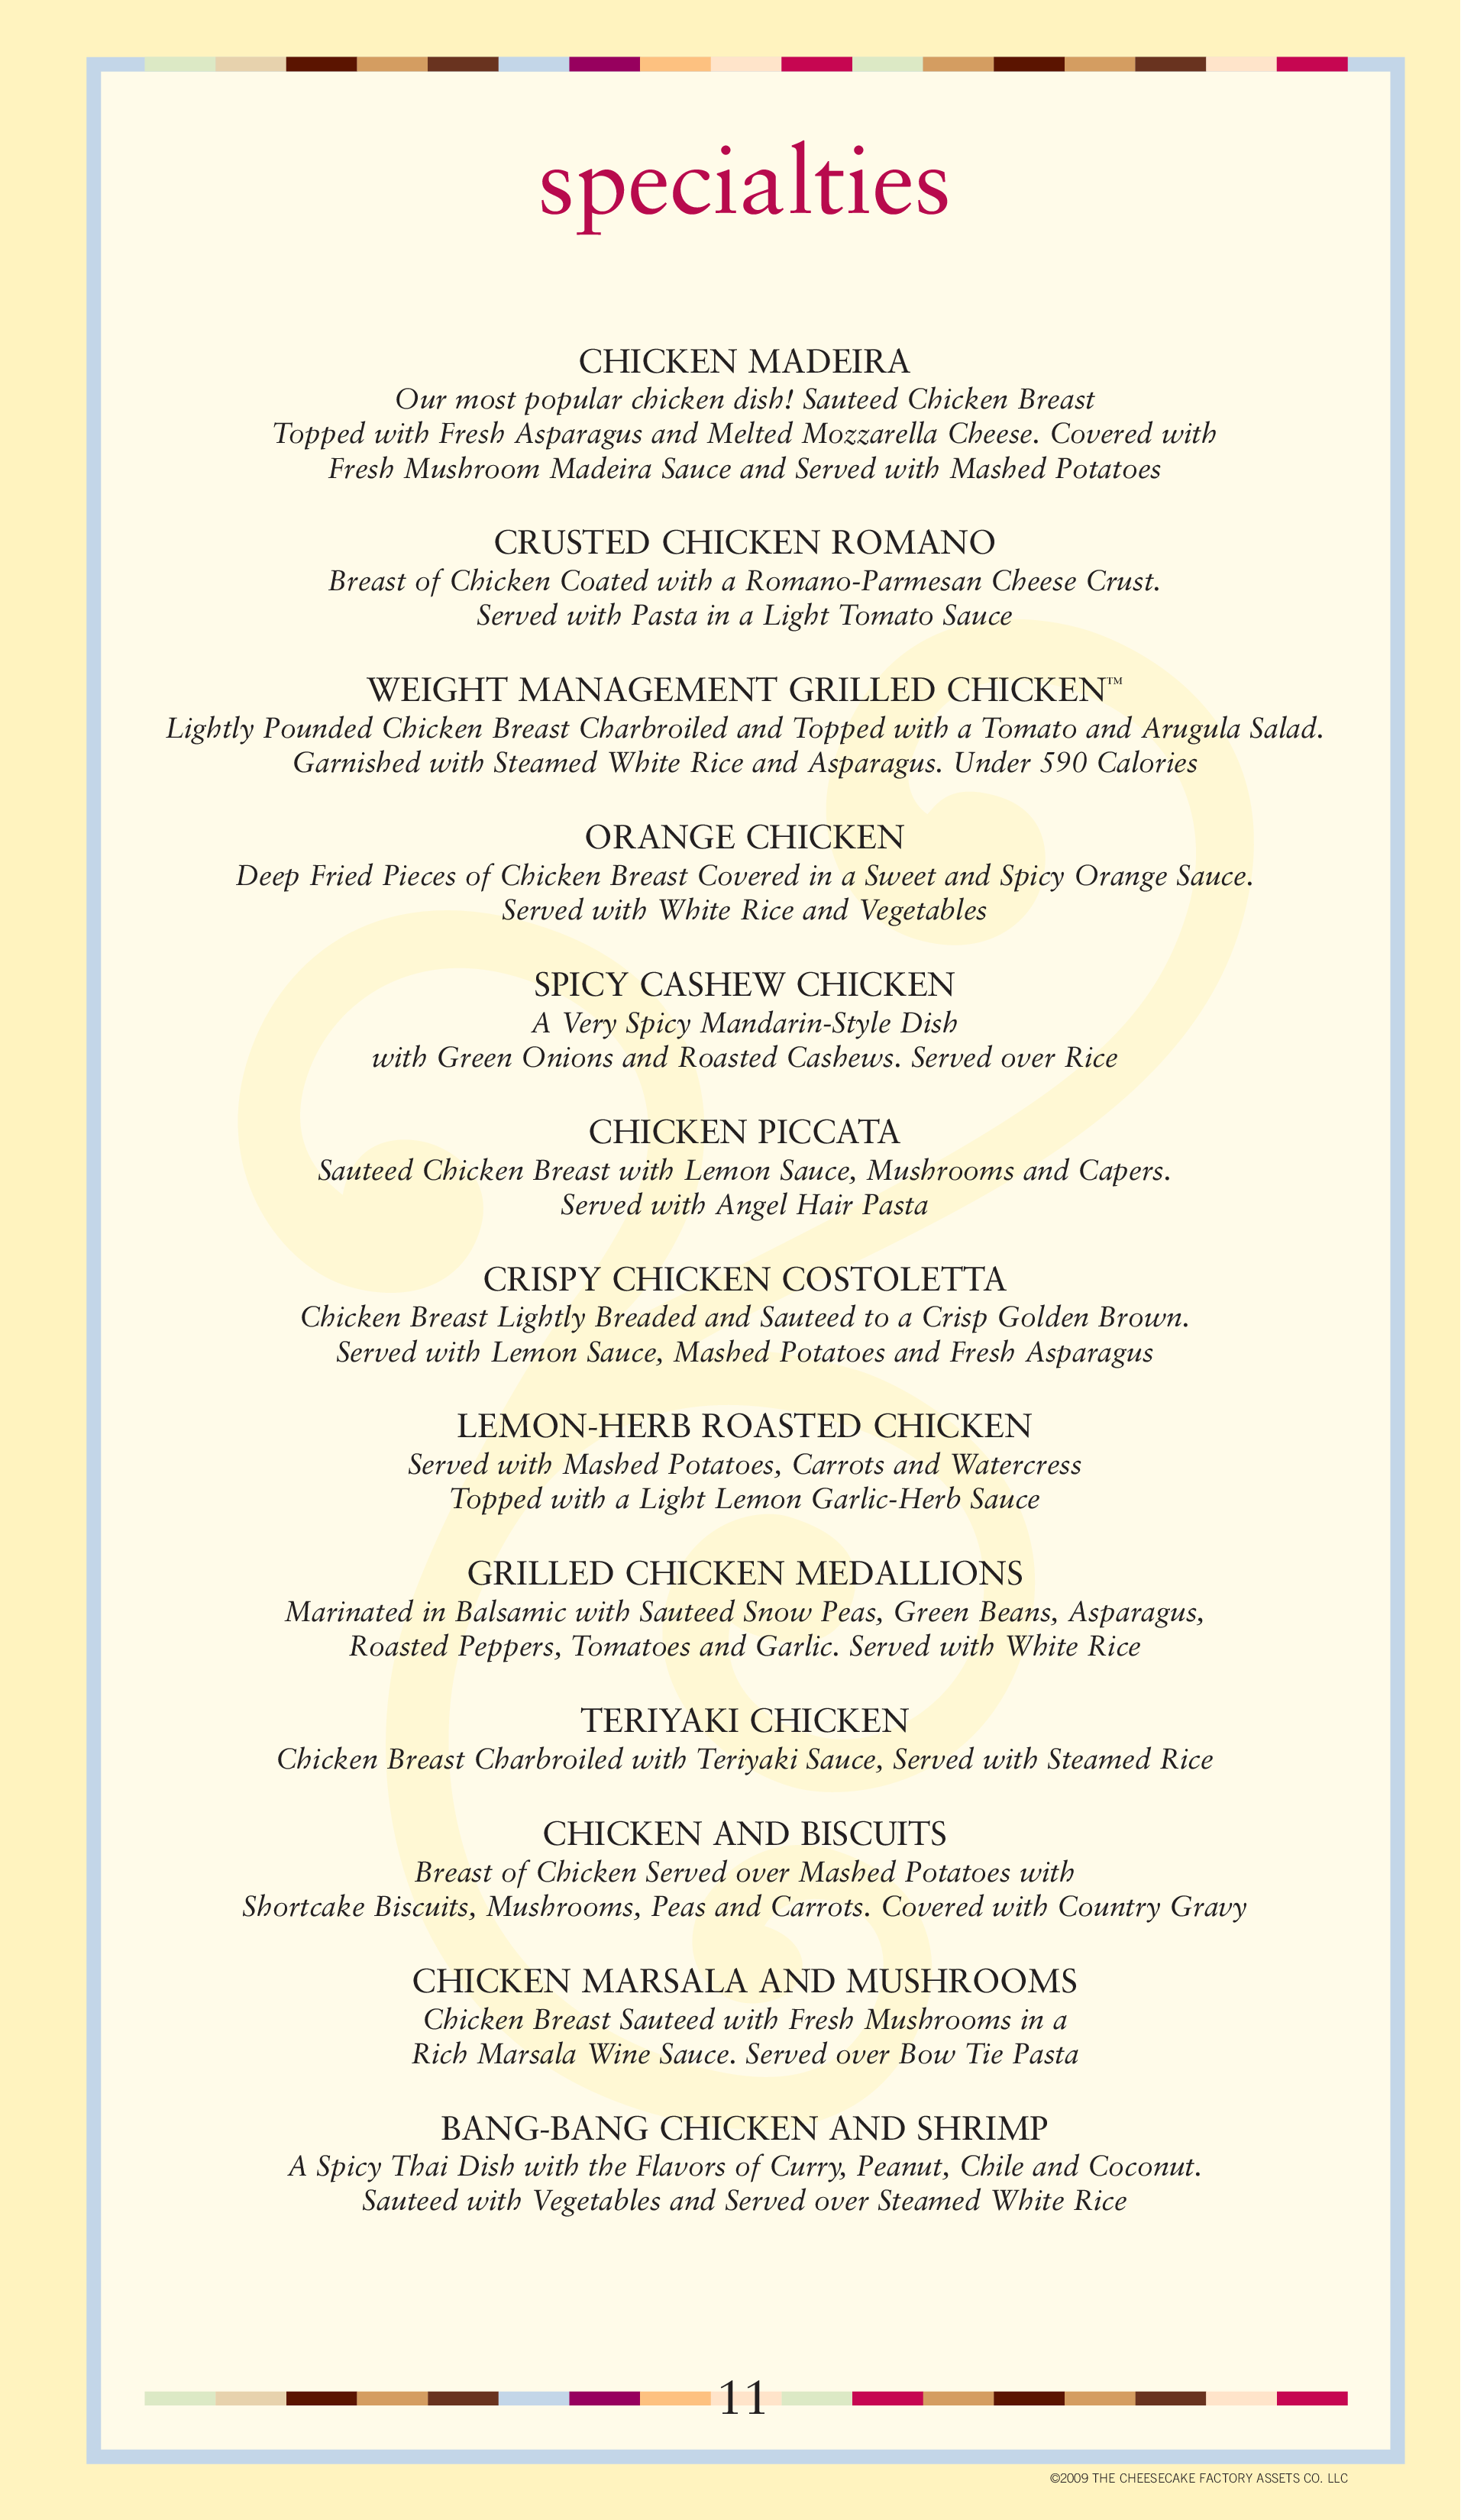 image about Cheesecake Factory Printable Menu known as Menu at The Cheesecake Manufacturing unit desserts, Jacksonville, Mid